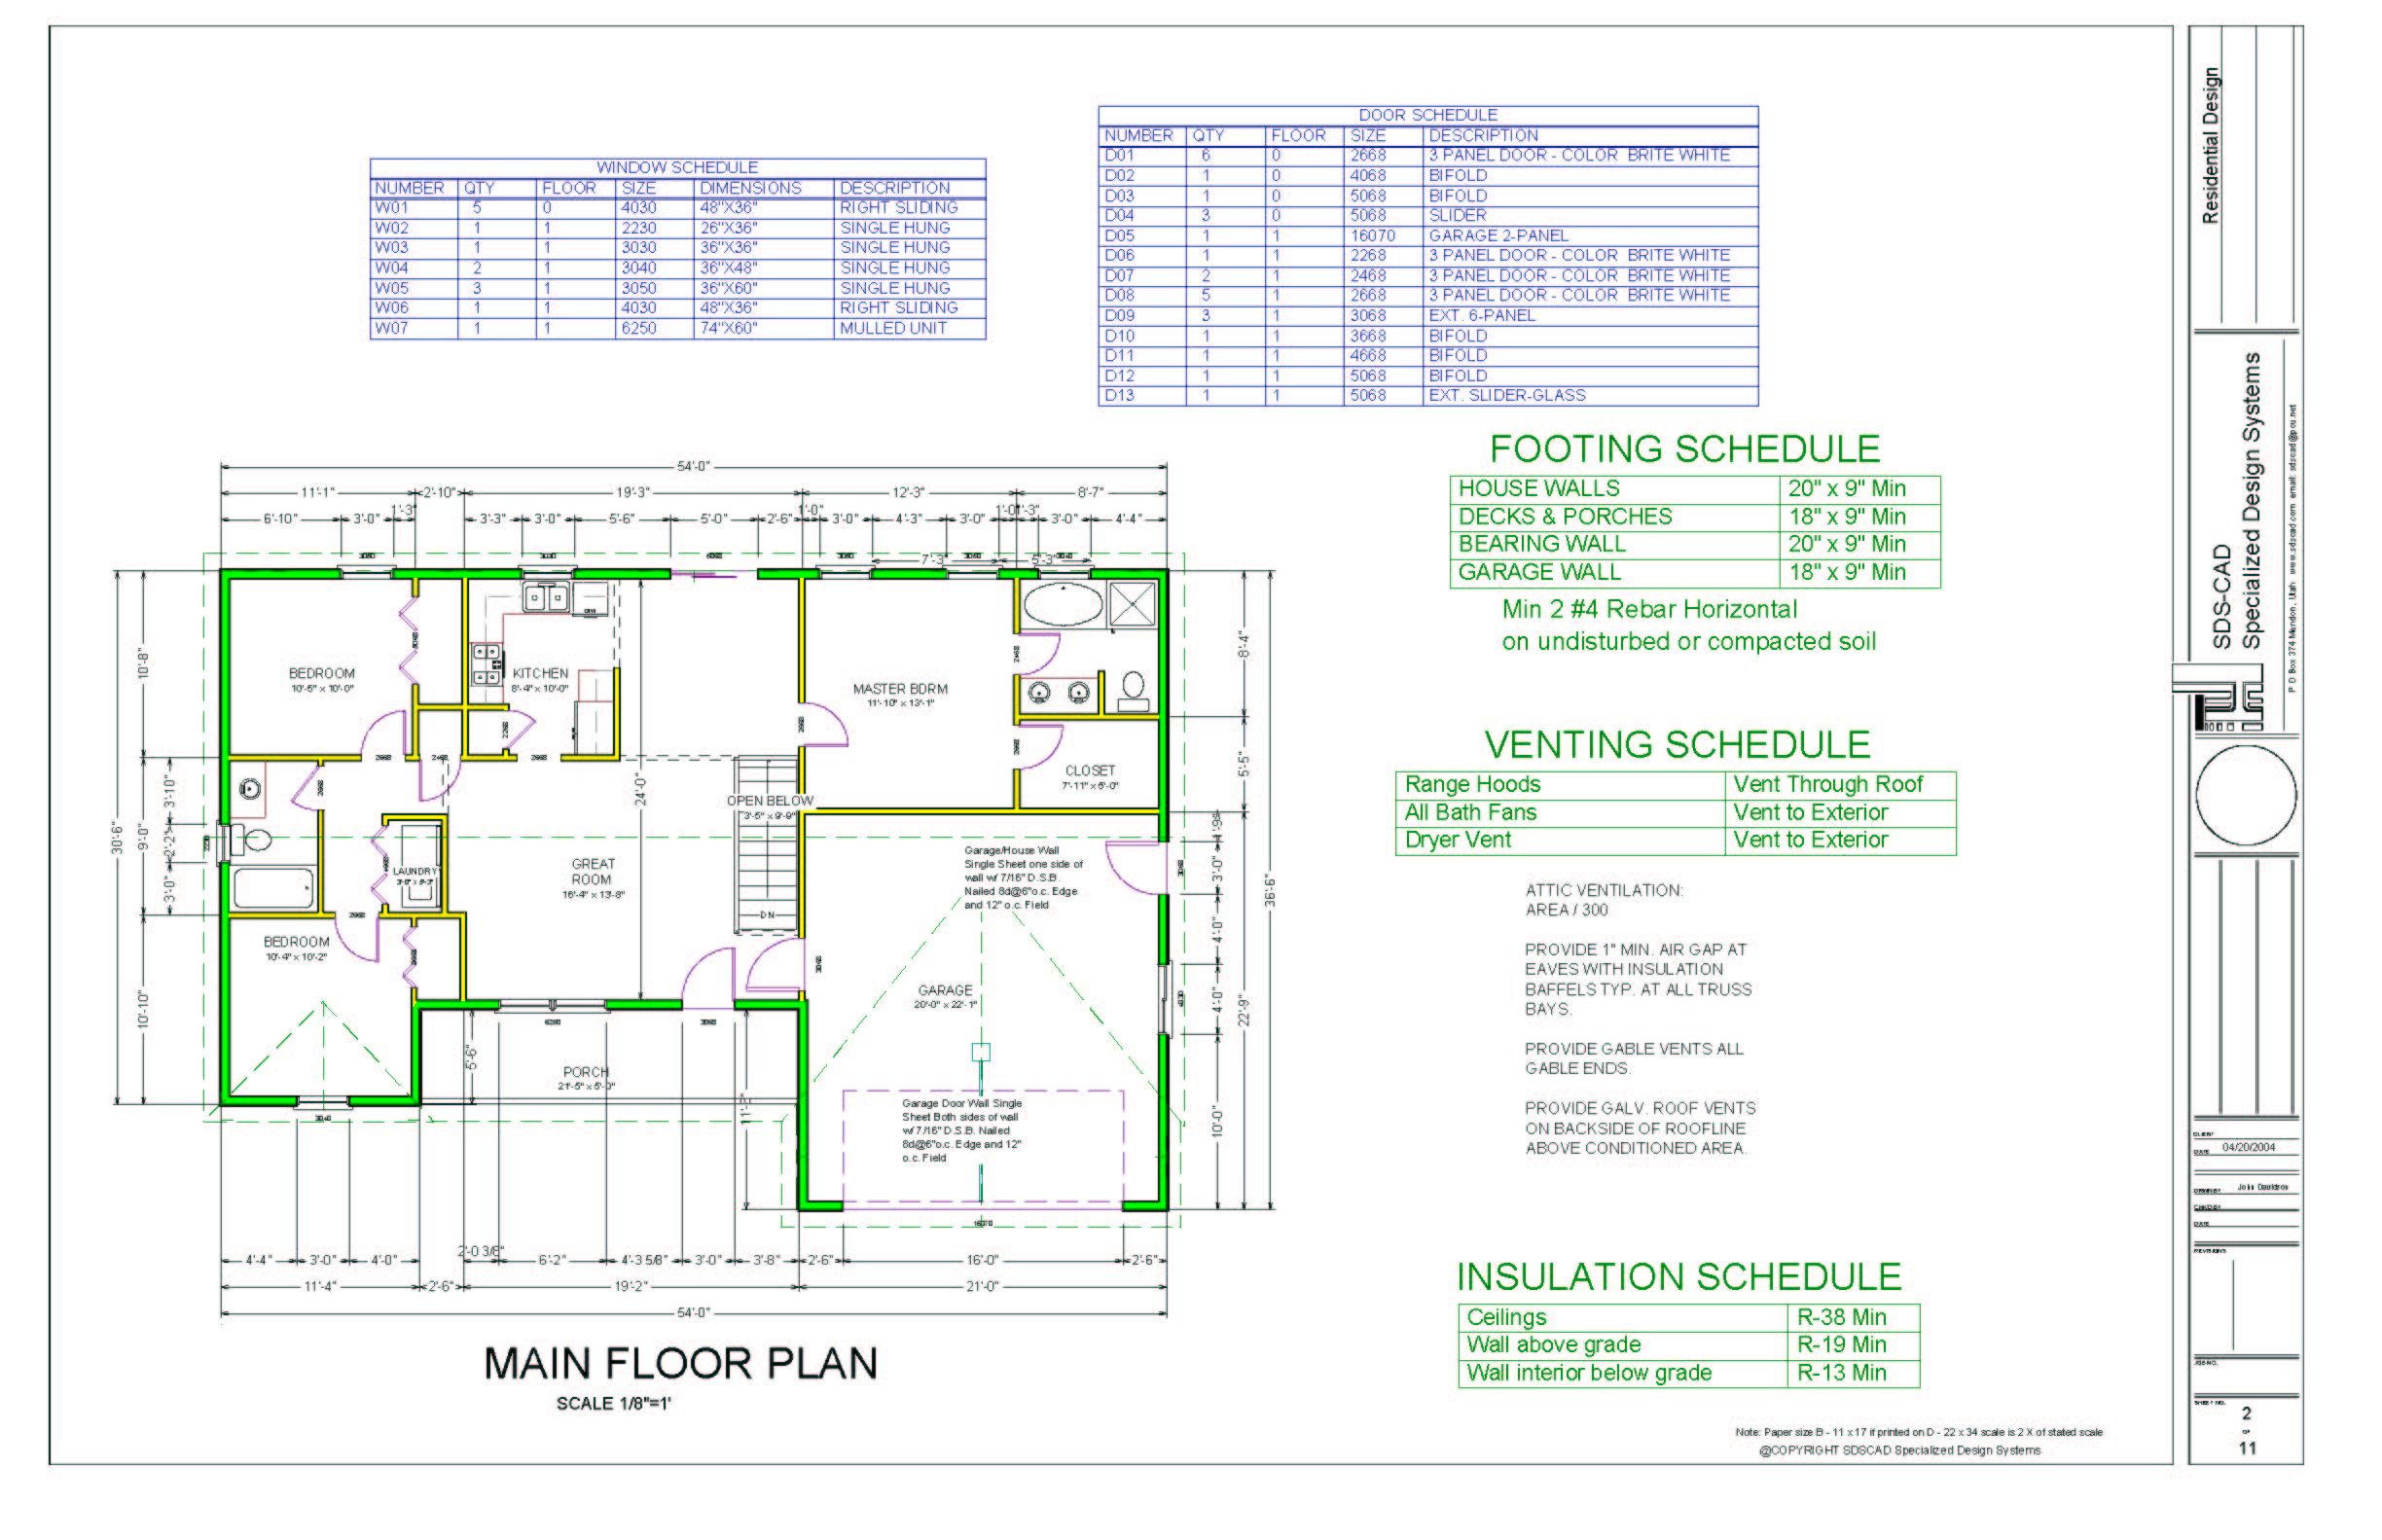 Home design blueprint maker architecture software plant layout plans home design blueprint maker architecture software plant layout plans warehouse with malvernweather Images